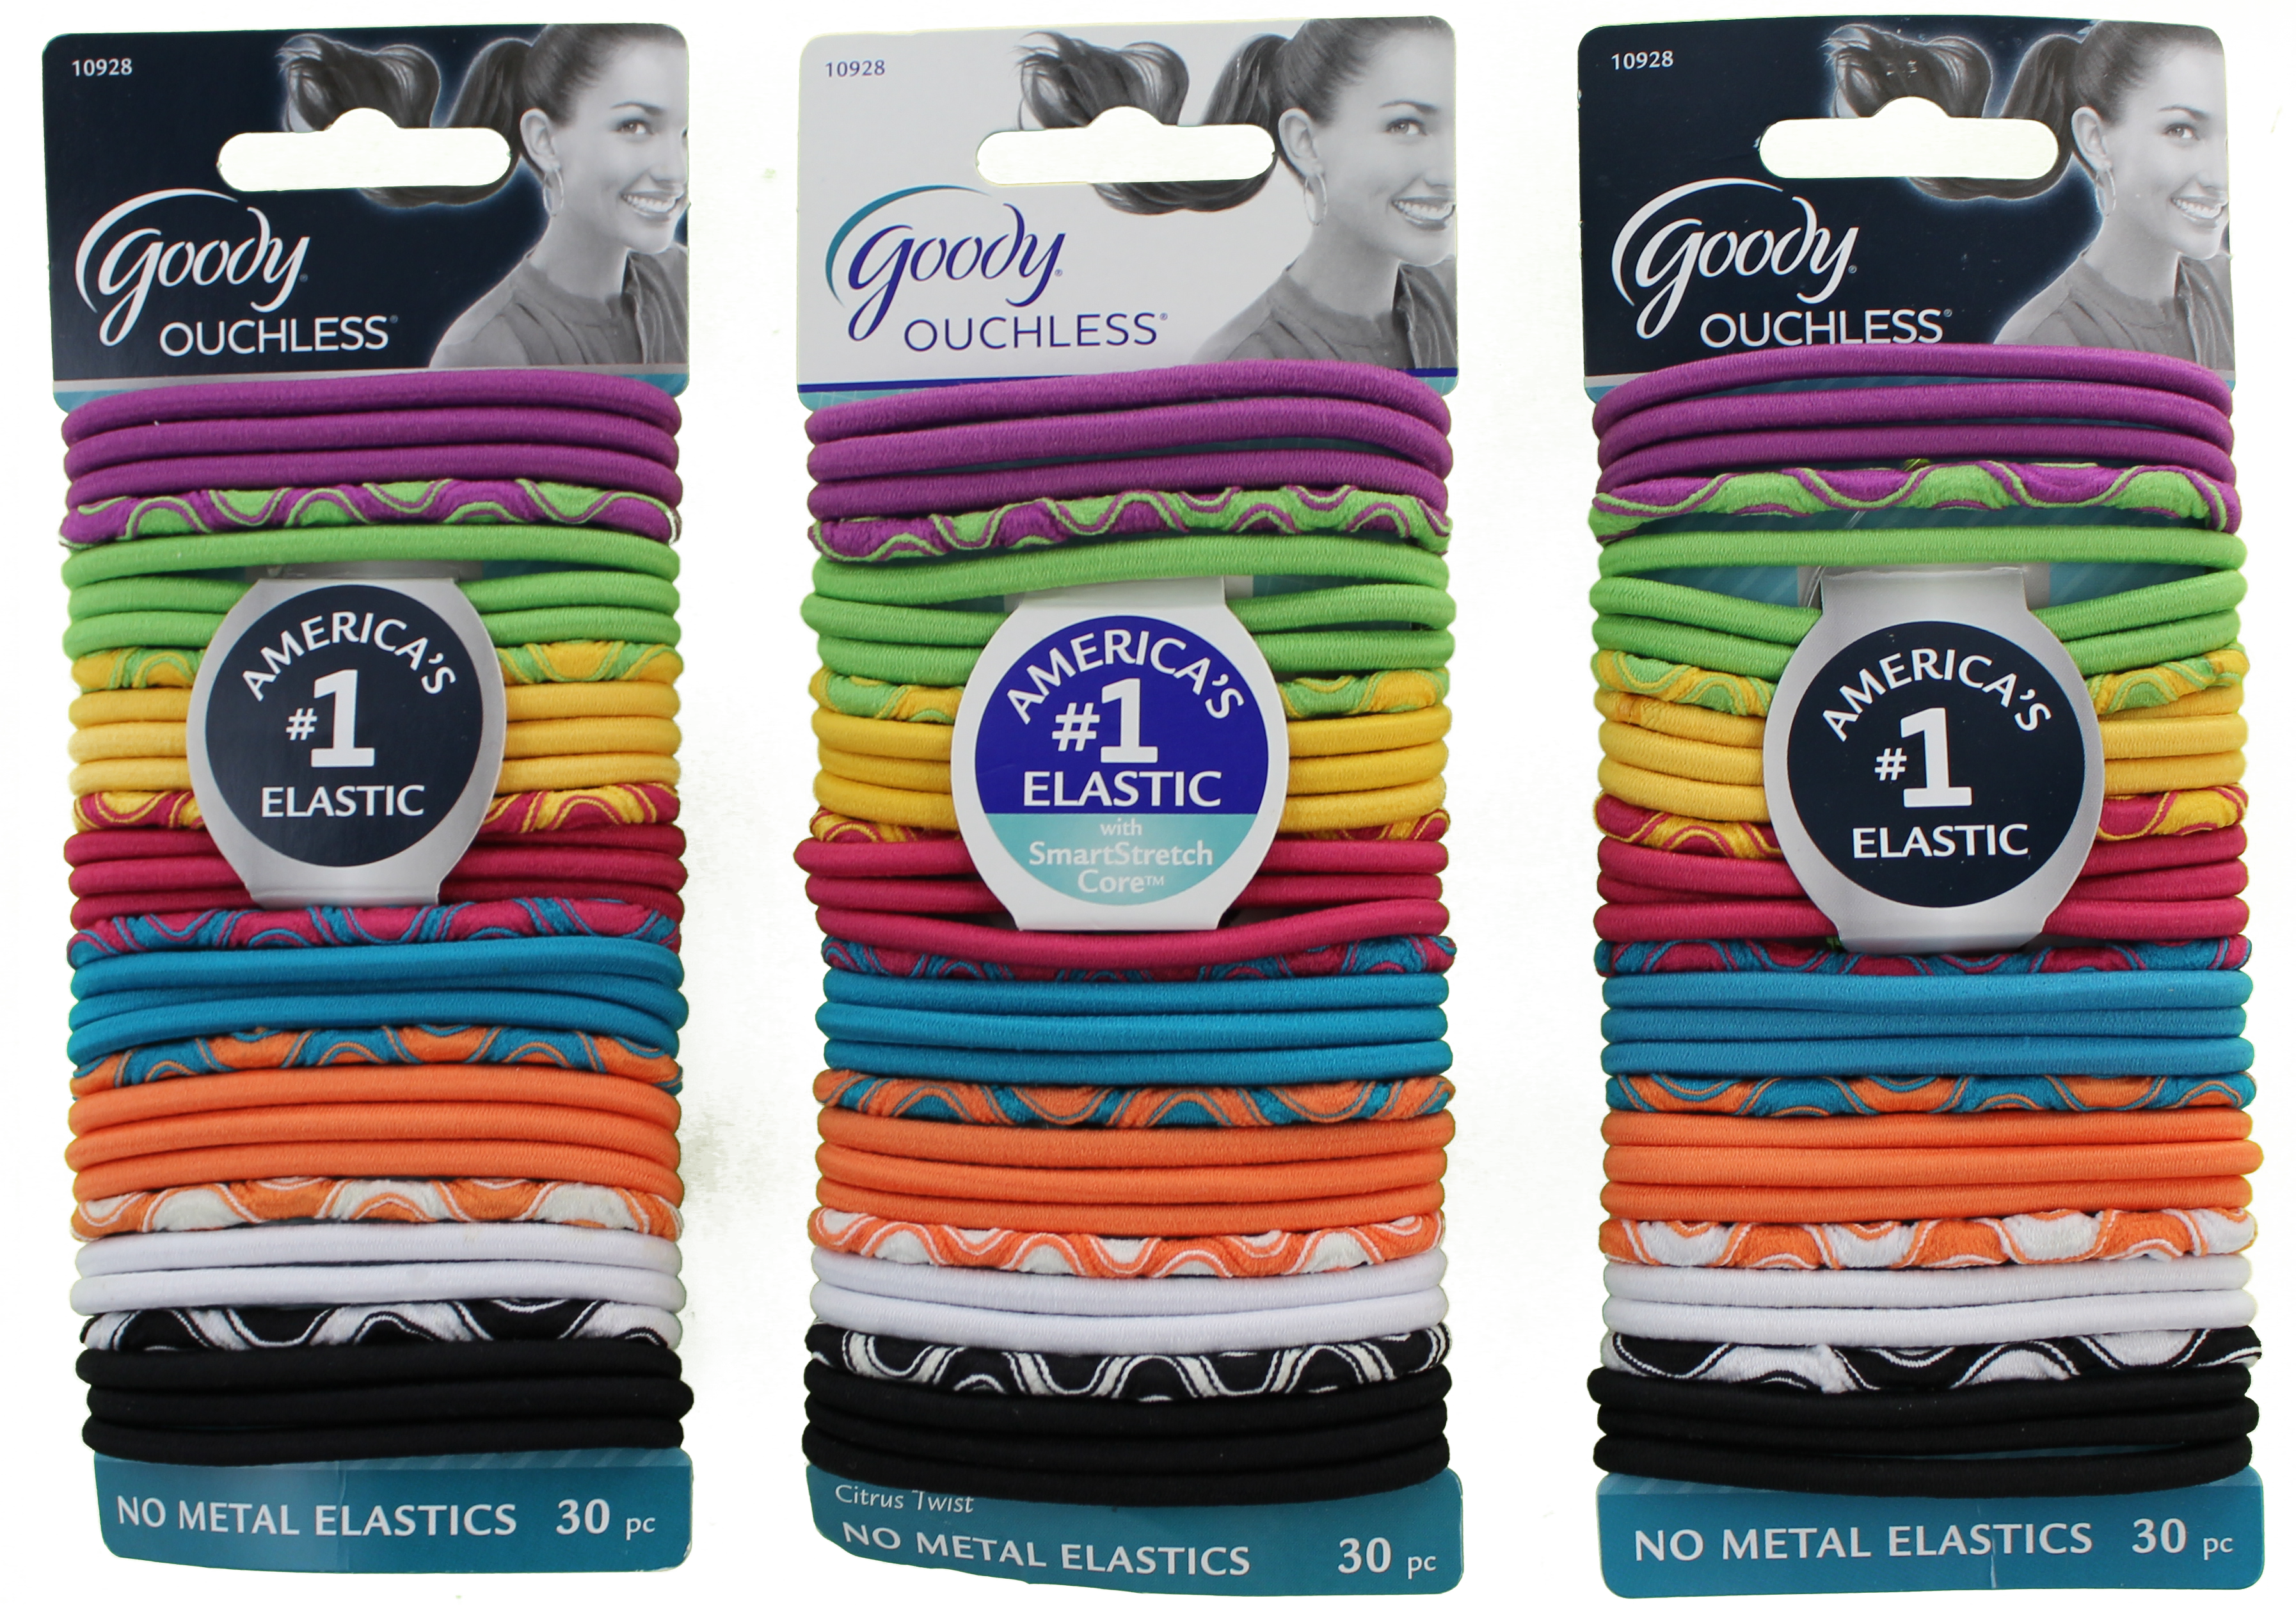 Goody Ouchless No Metal Elastics Citrus Twist 30 Count